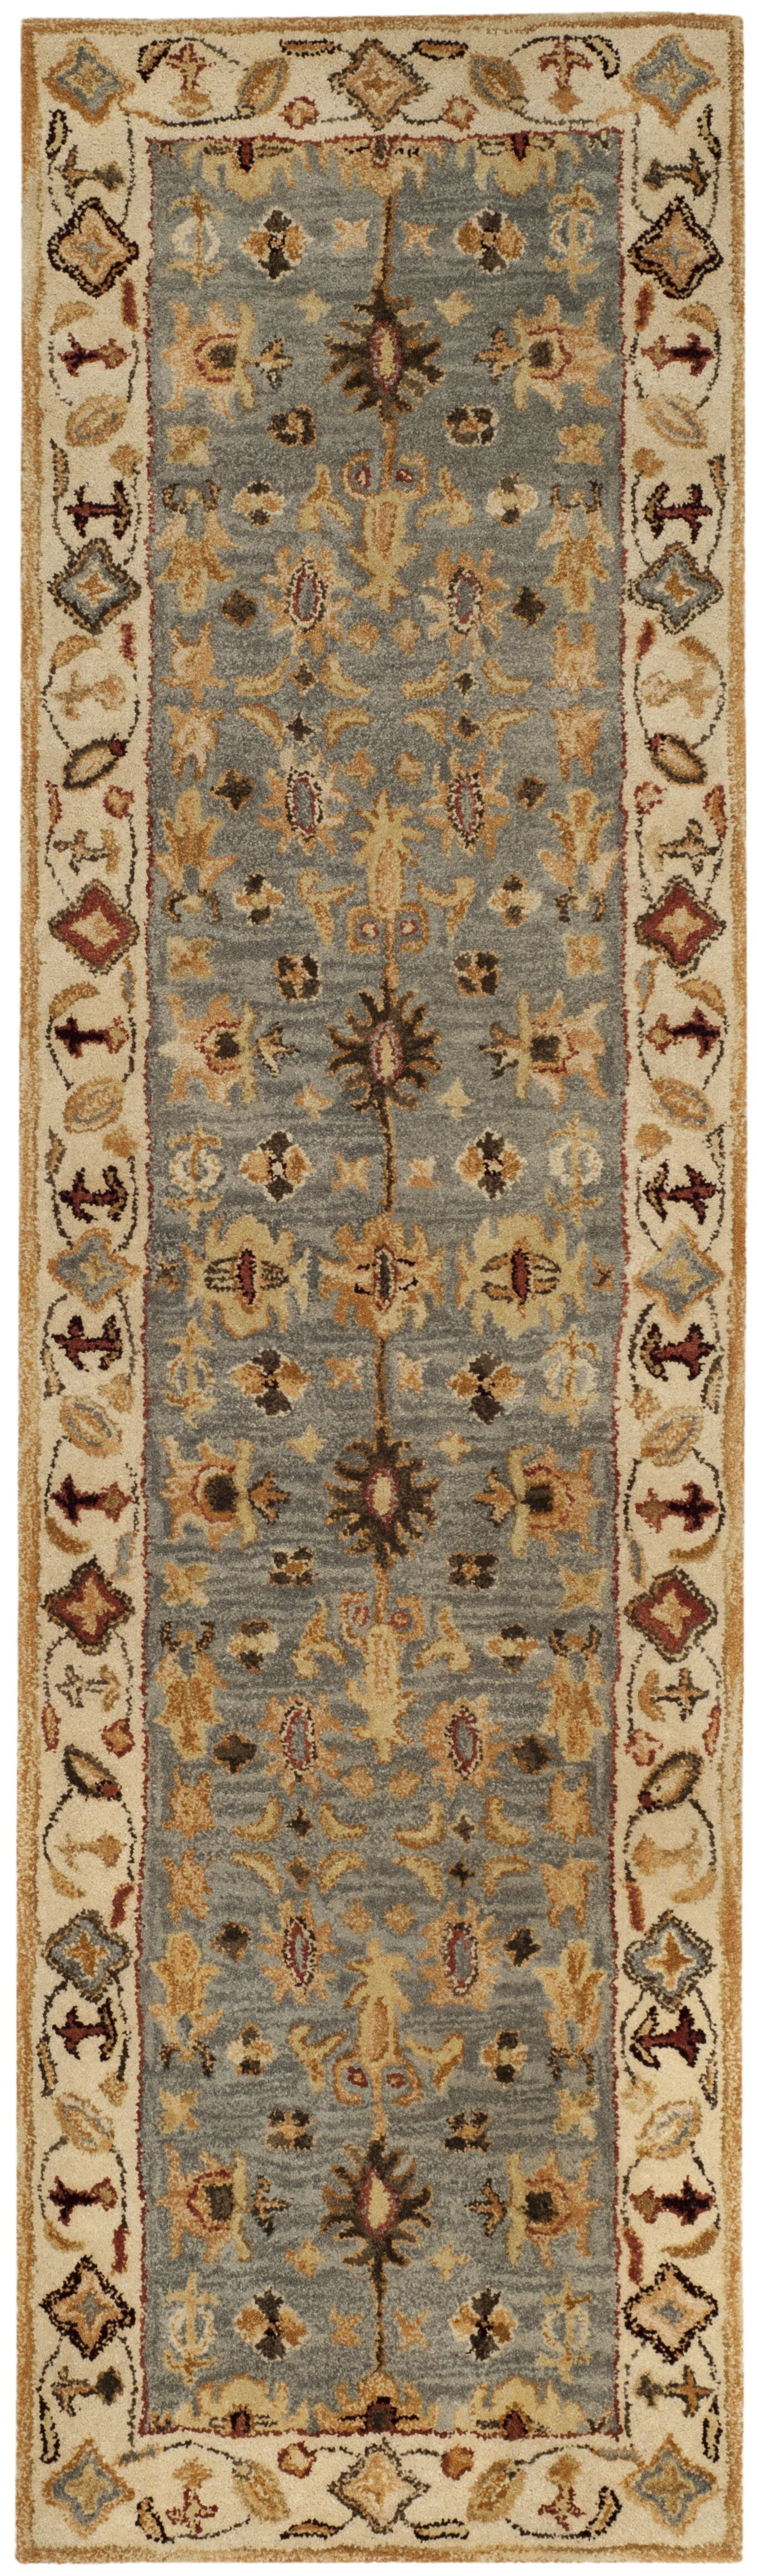 Tinley Hand-Tufted Wool Beige Area Rug Rug Size: Runner 2'3